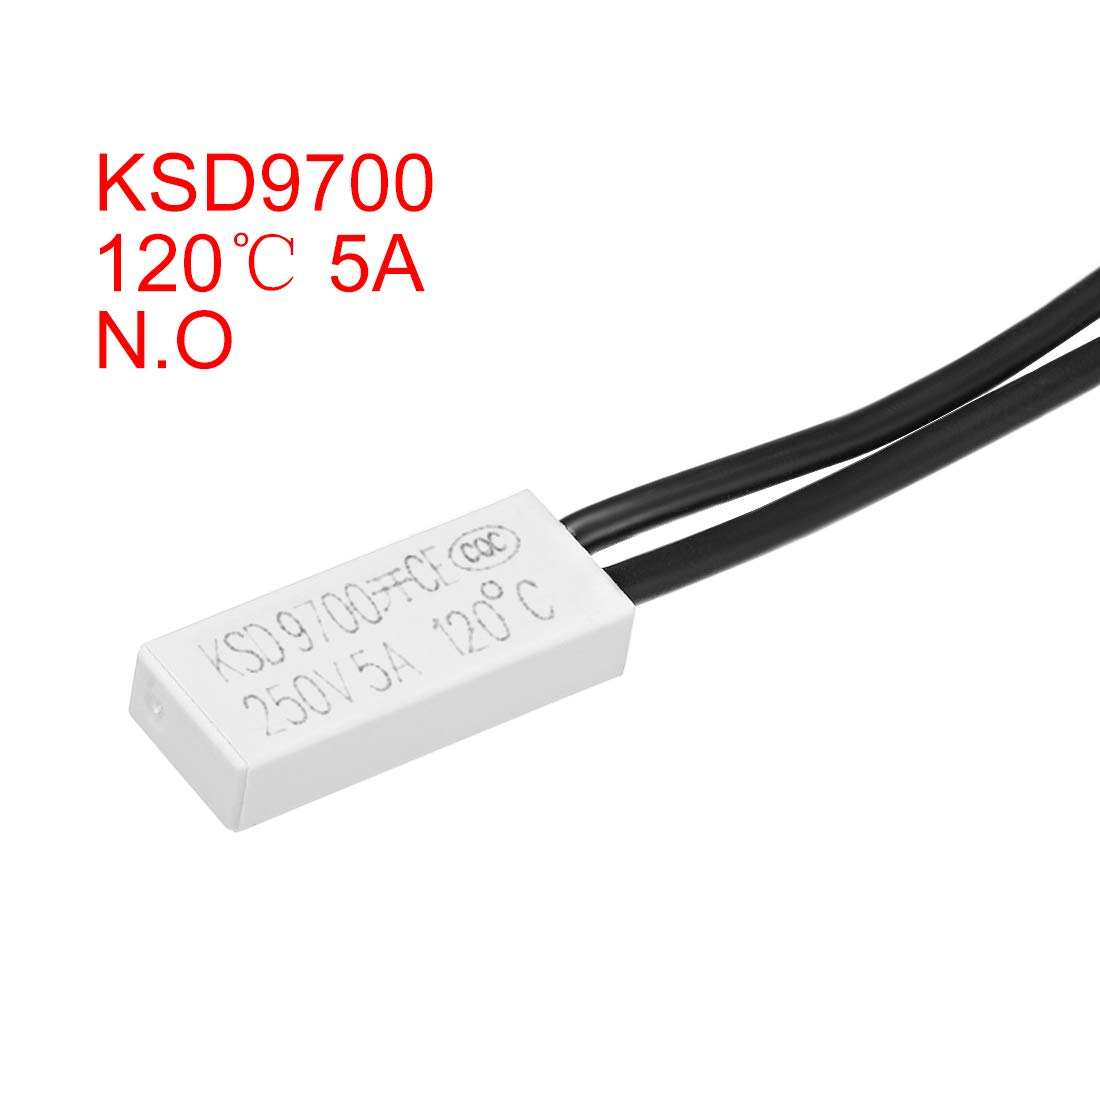 uxcell KSD9700 Thermostat N.O 5A Thermal Switch Bimetal Temperature Controller 2pcs 40℃ Normally Open Temperature Switch